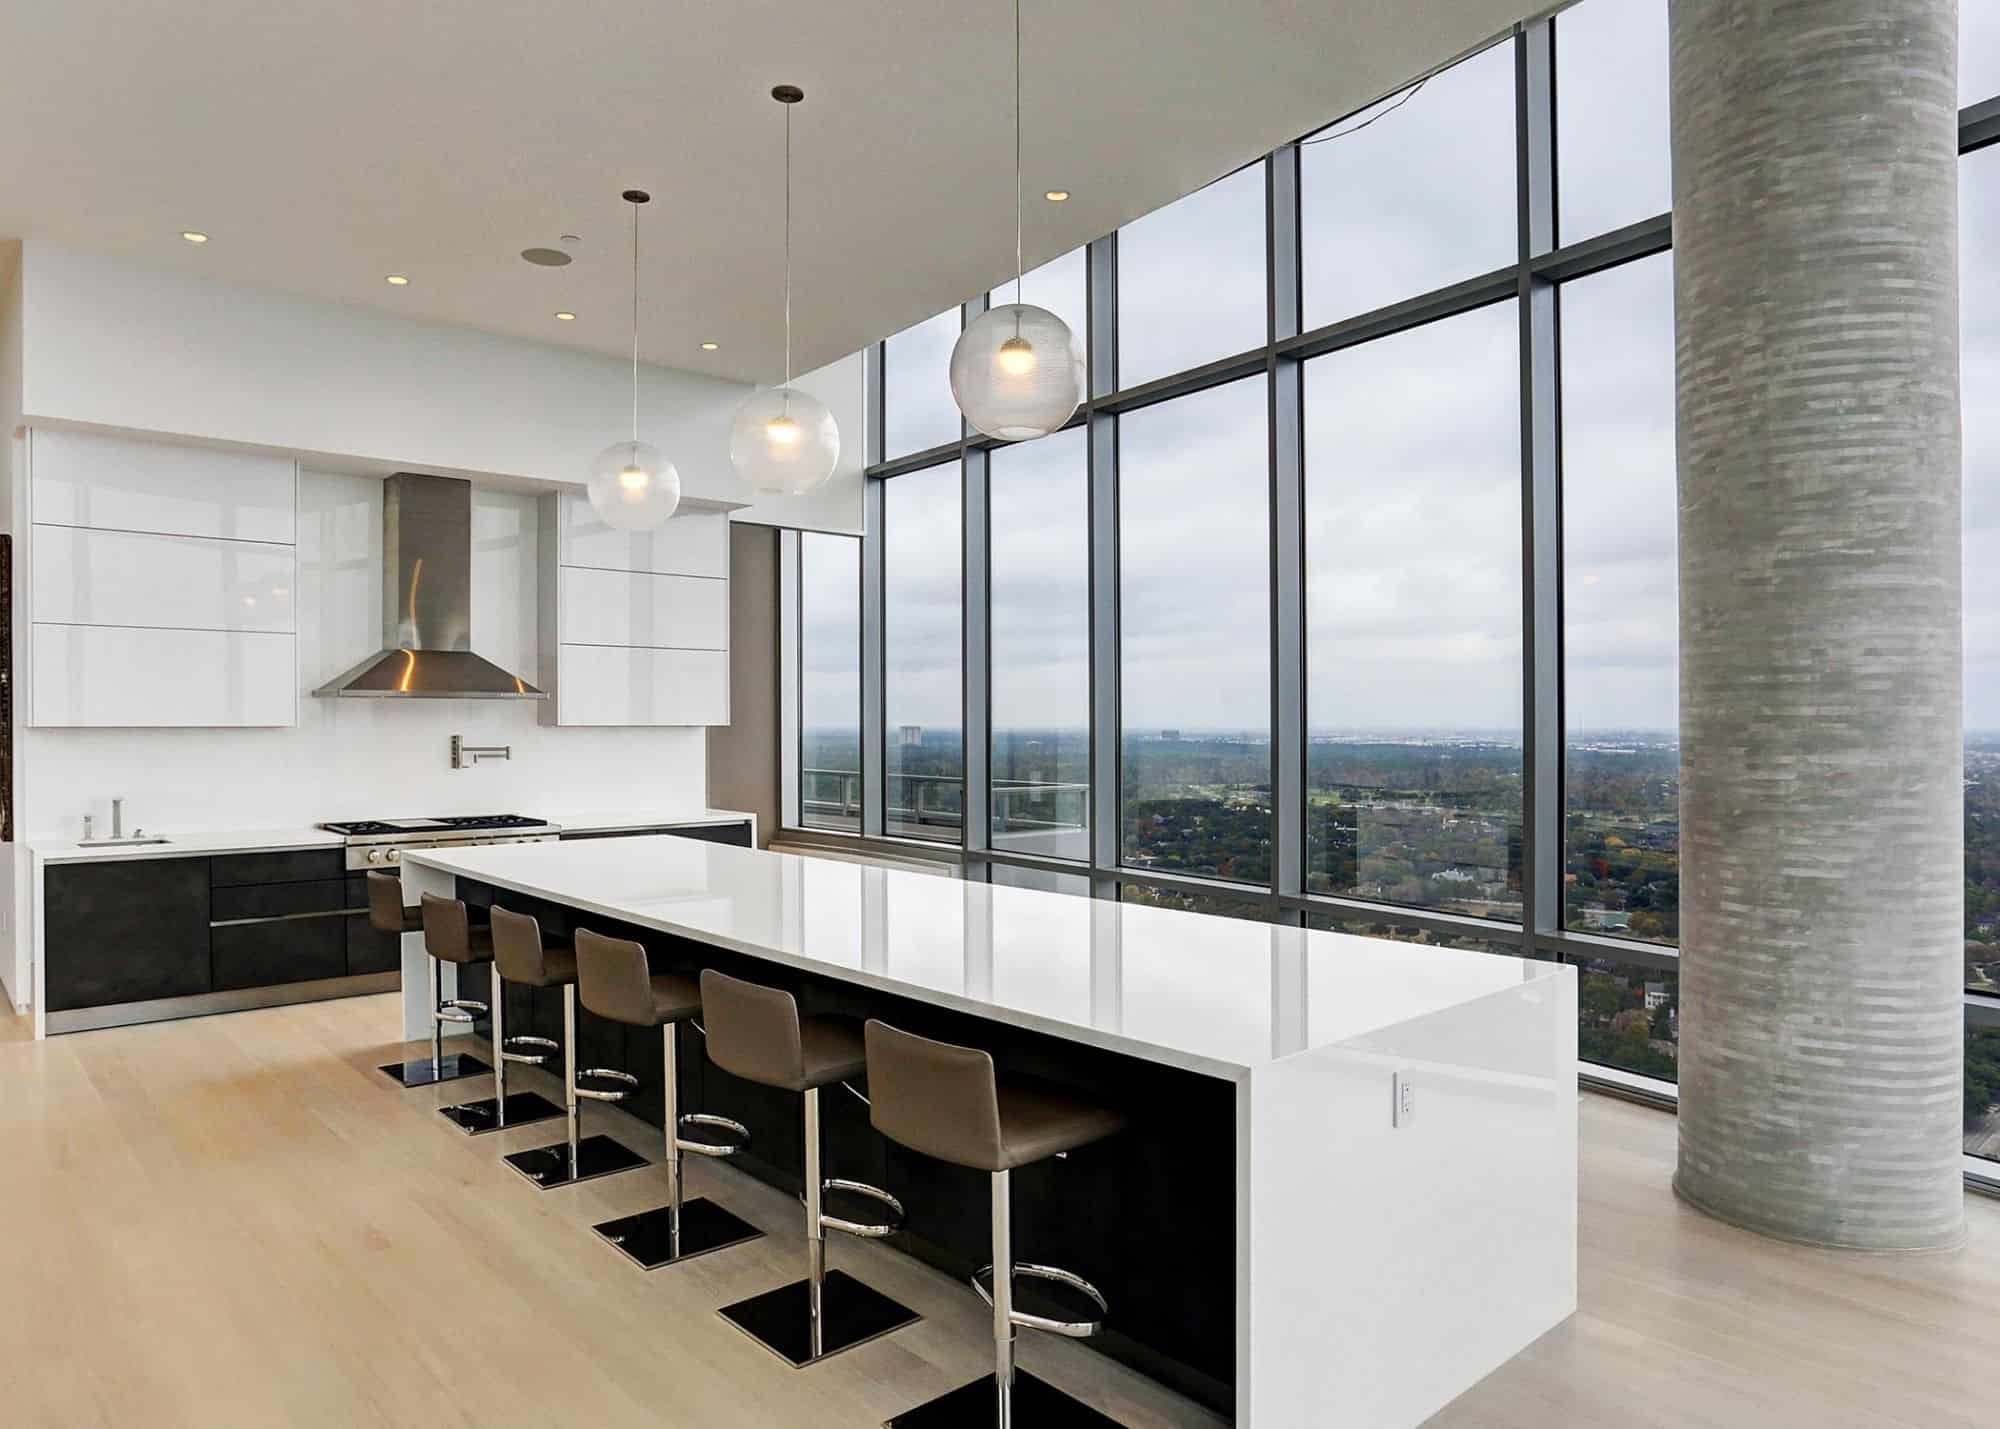 the view inside this ultra-modern glossy white kitchen is just as stunning as the view outside this highrise city apartment